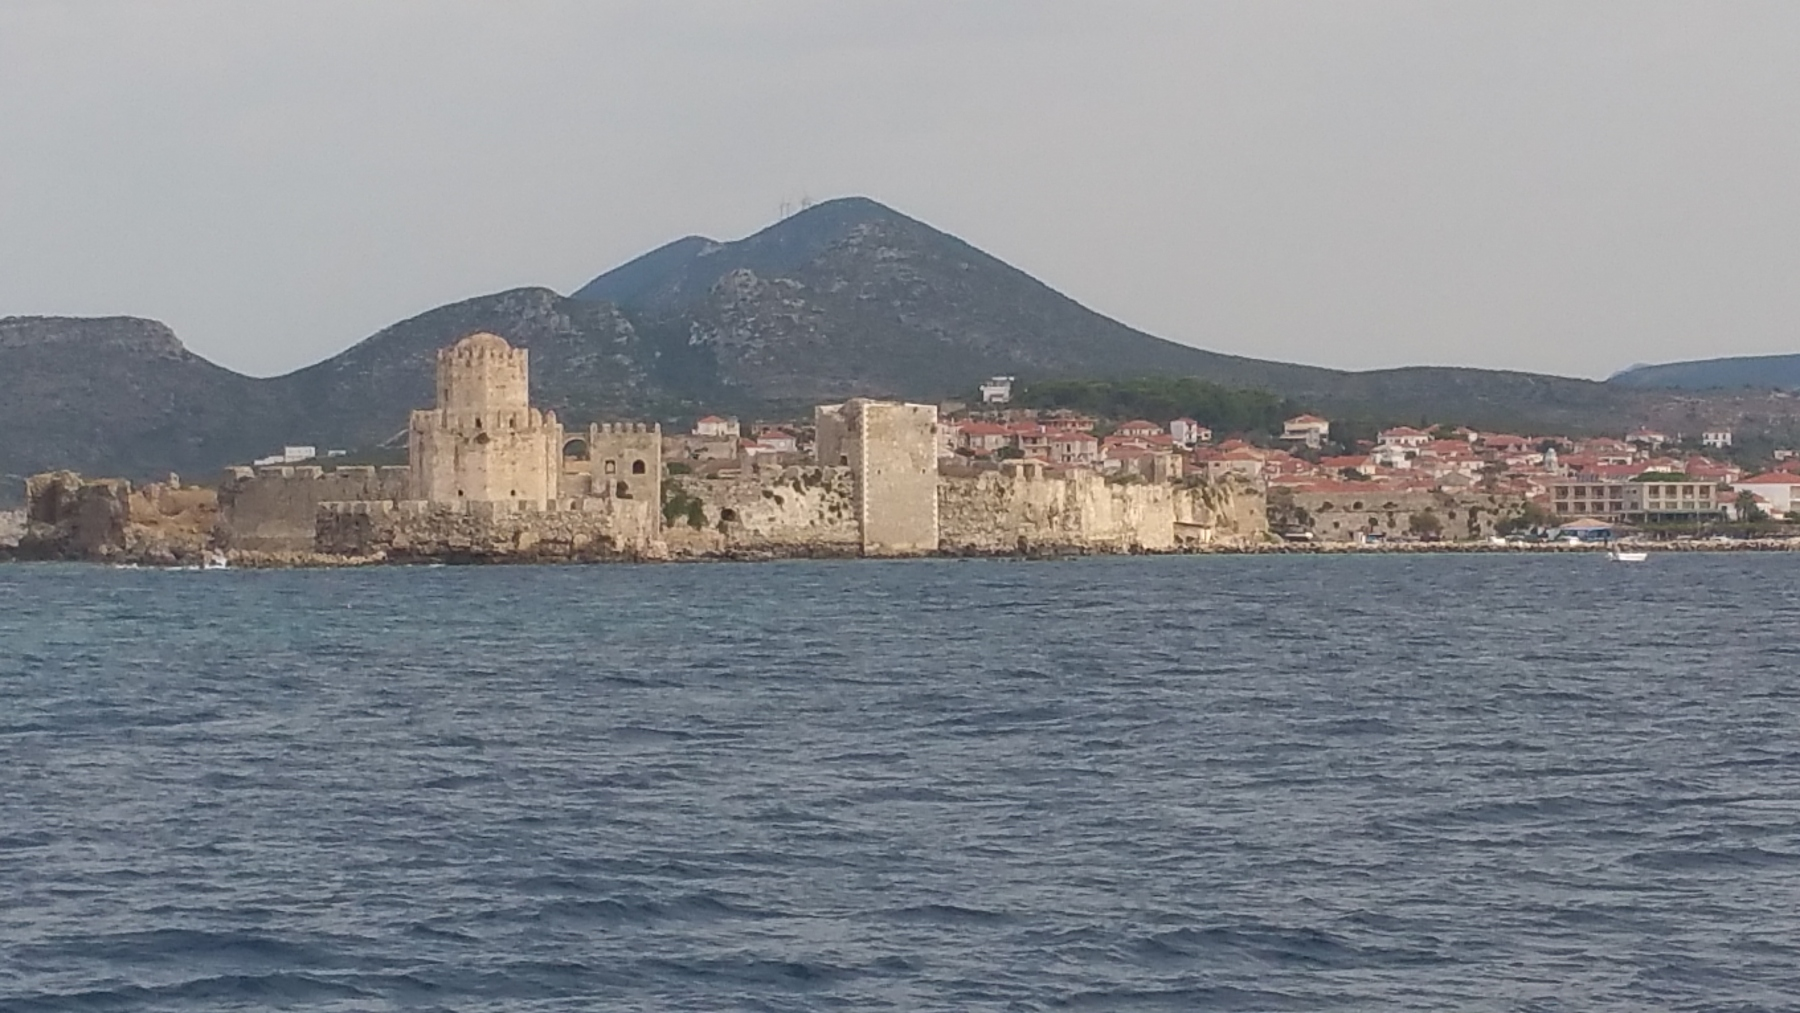 The fortress at Methoni